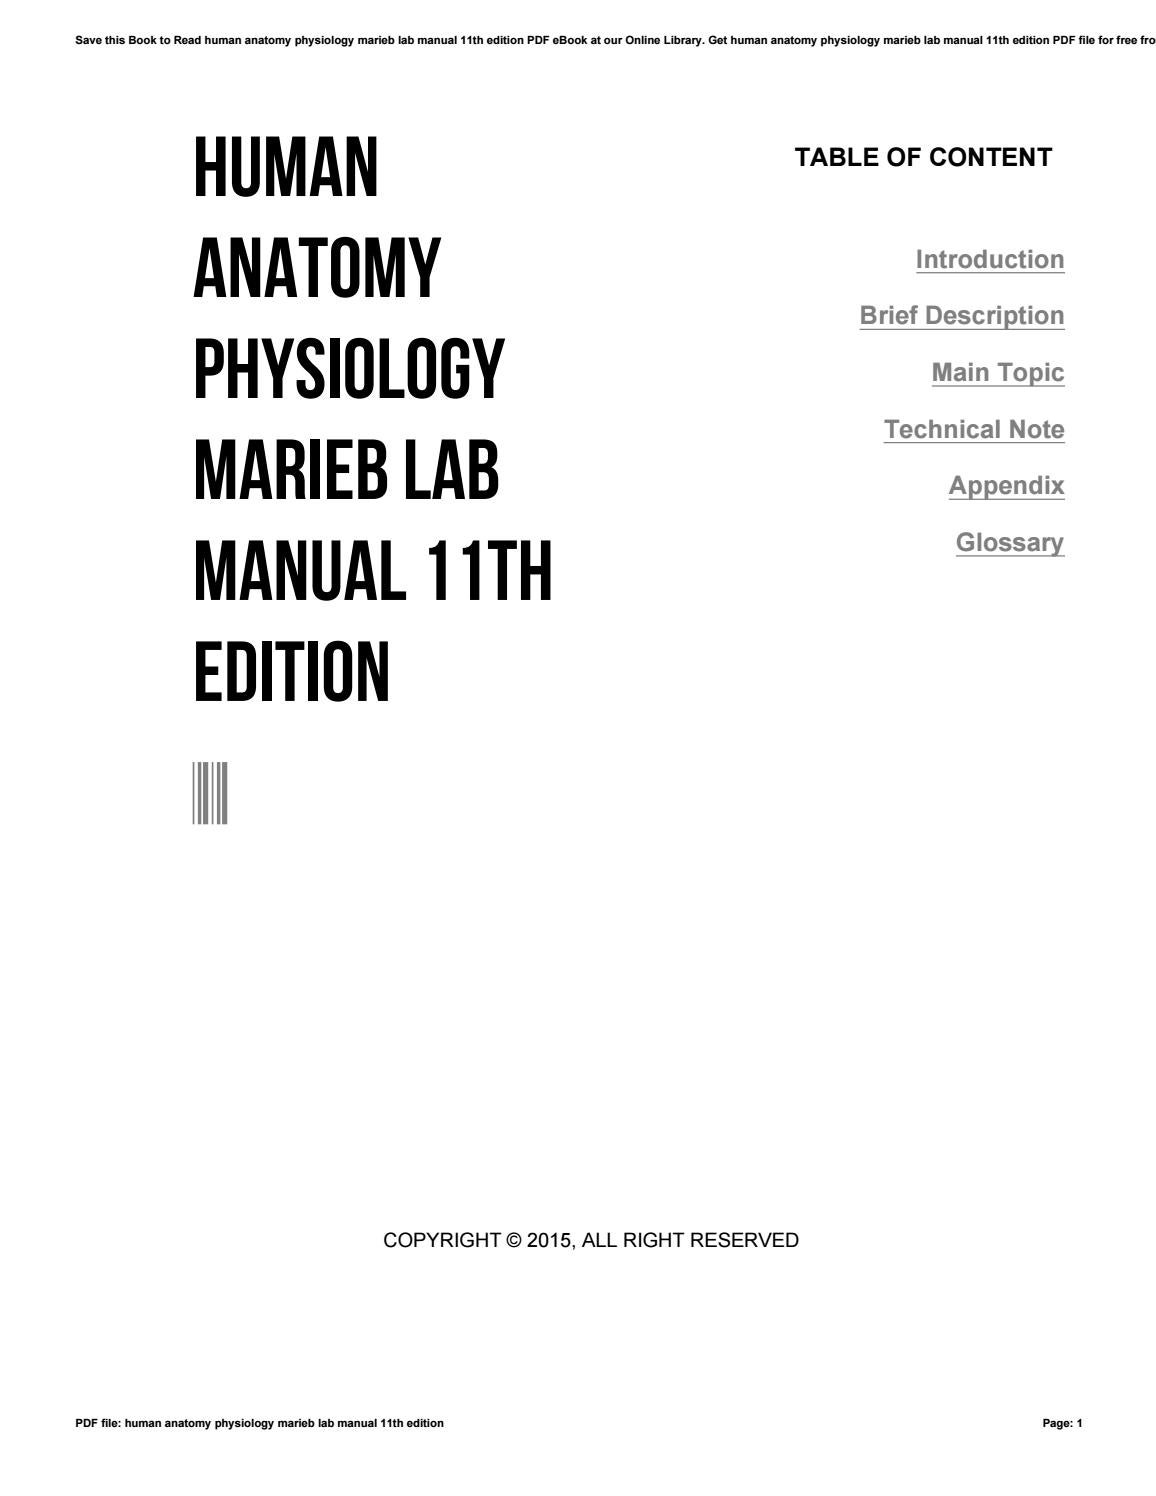 Human anatomy physiology marieb lab manual 11th edition by i858 - issuu